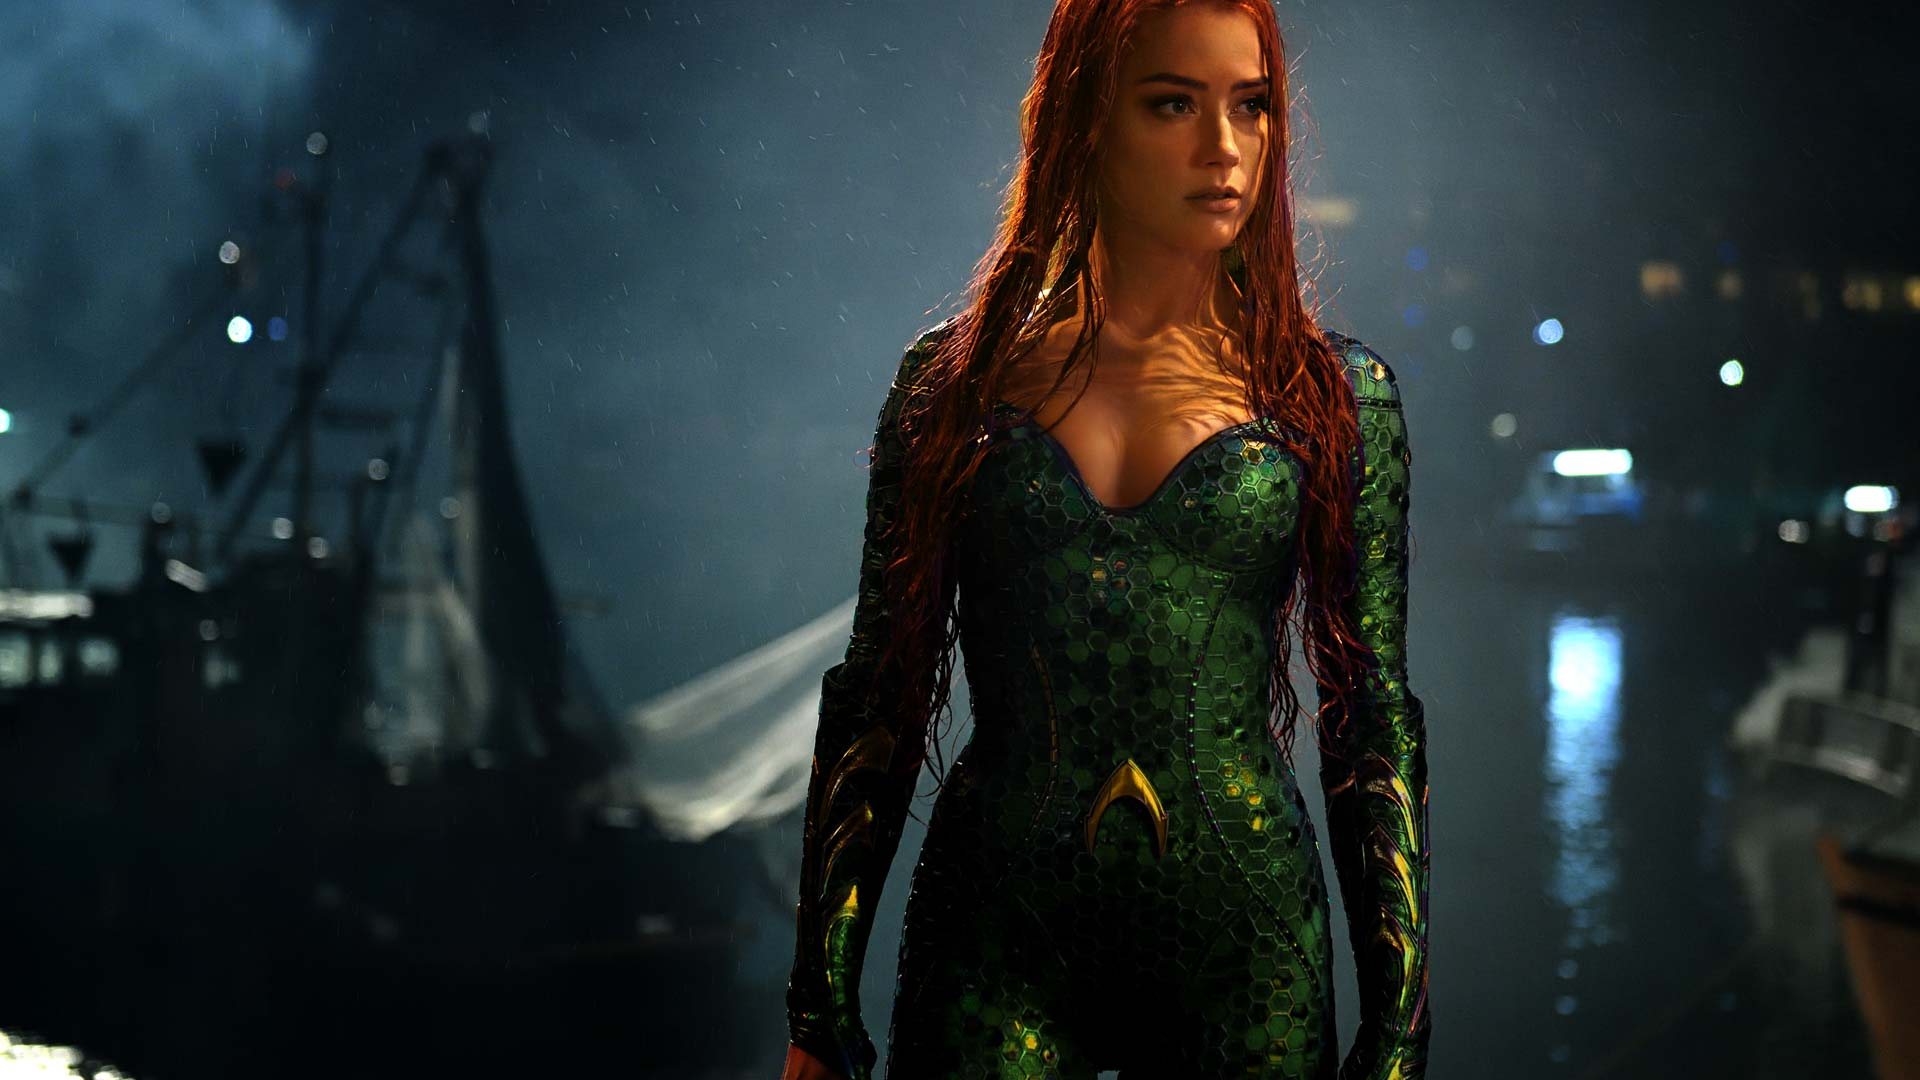 https://i1.wp.com/assets.papelpop.com/wp-content/uploads/2018/09/mera-aquaman-movie-xu.jpg?ssl=1